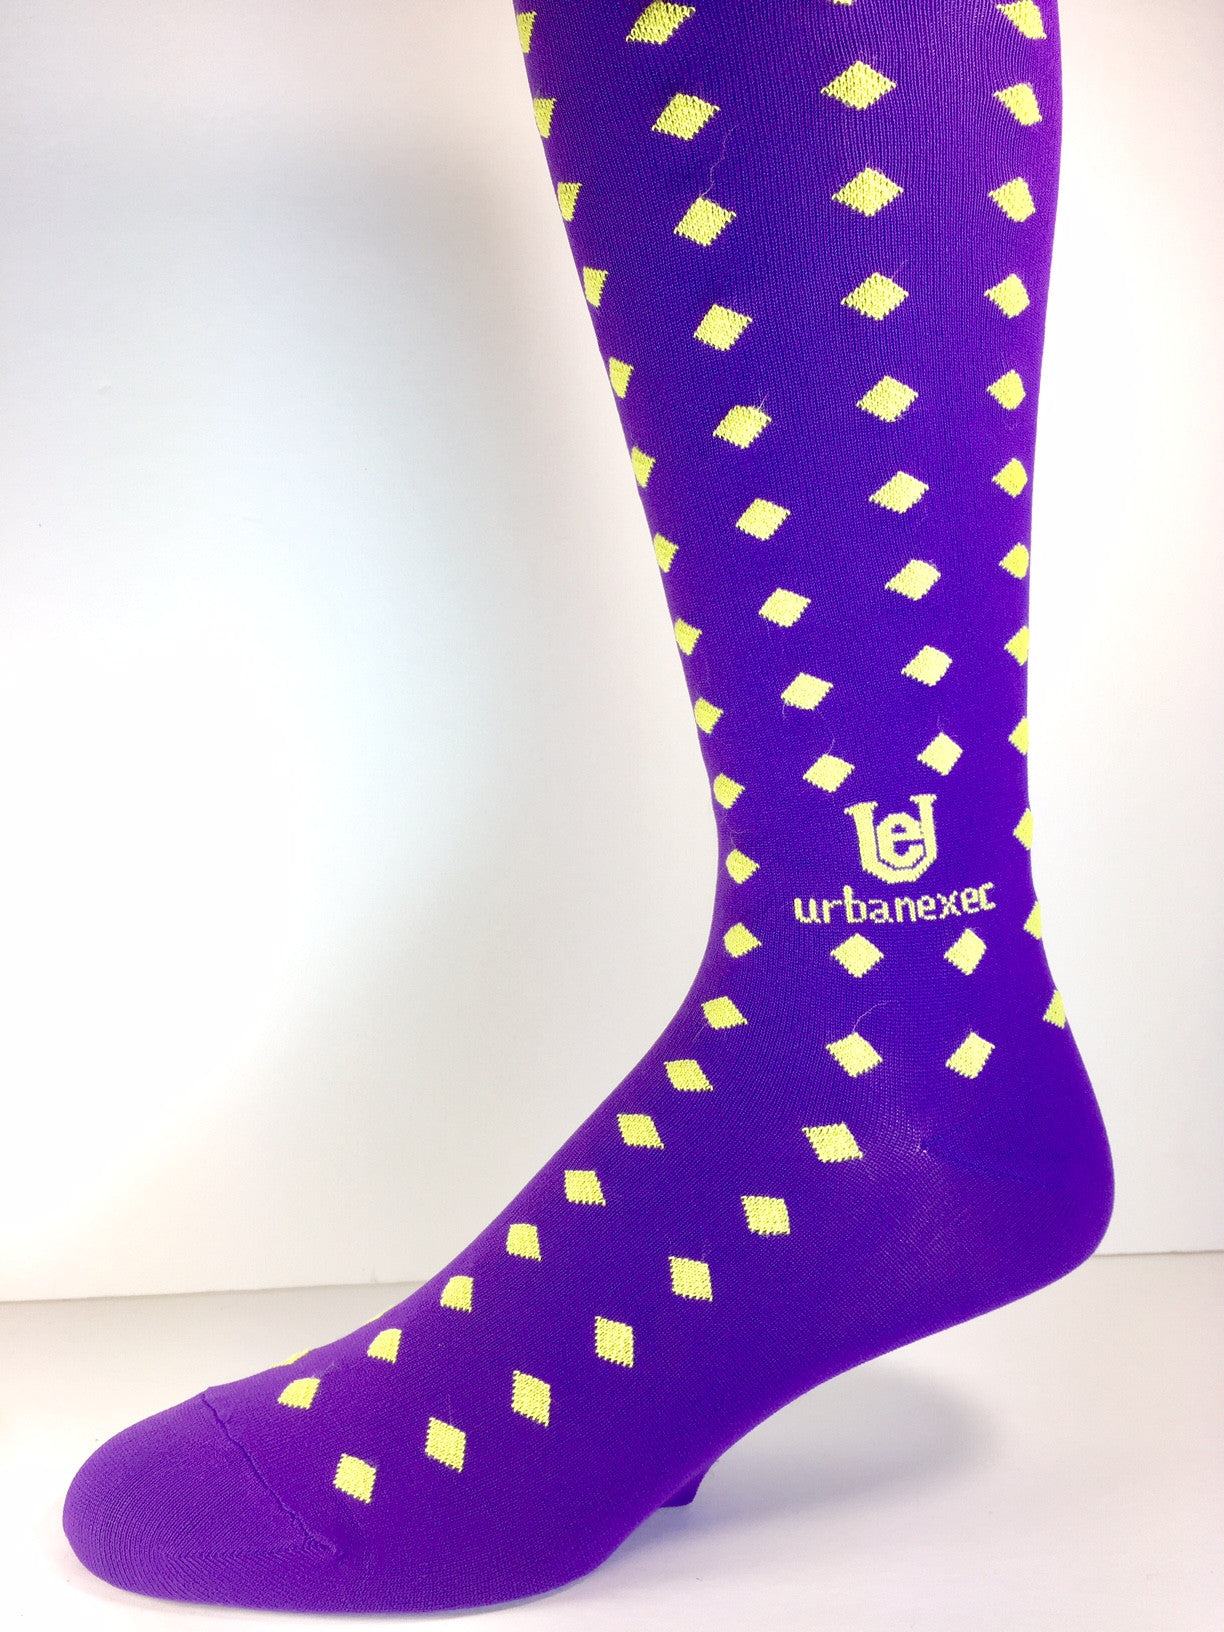 GAME DAY MEN'S PERFORMANCE SOCKS PURPLE AND GOLD